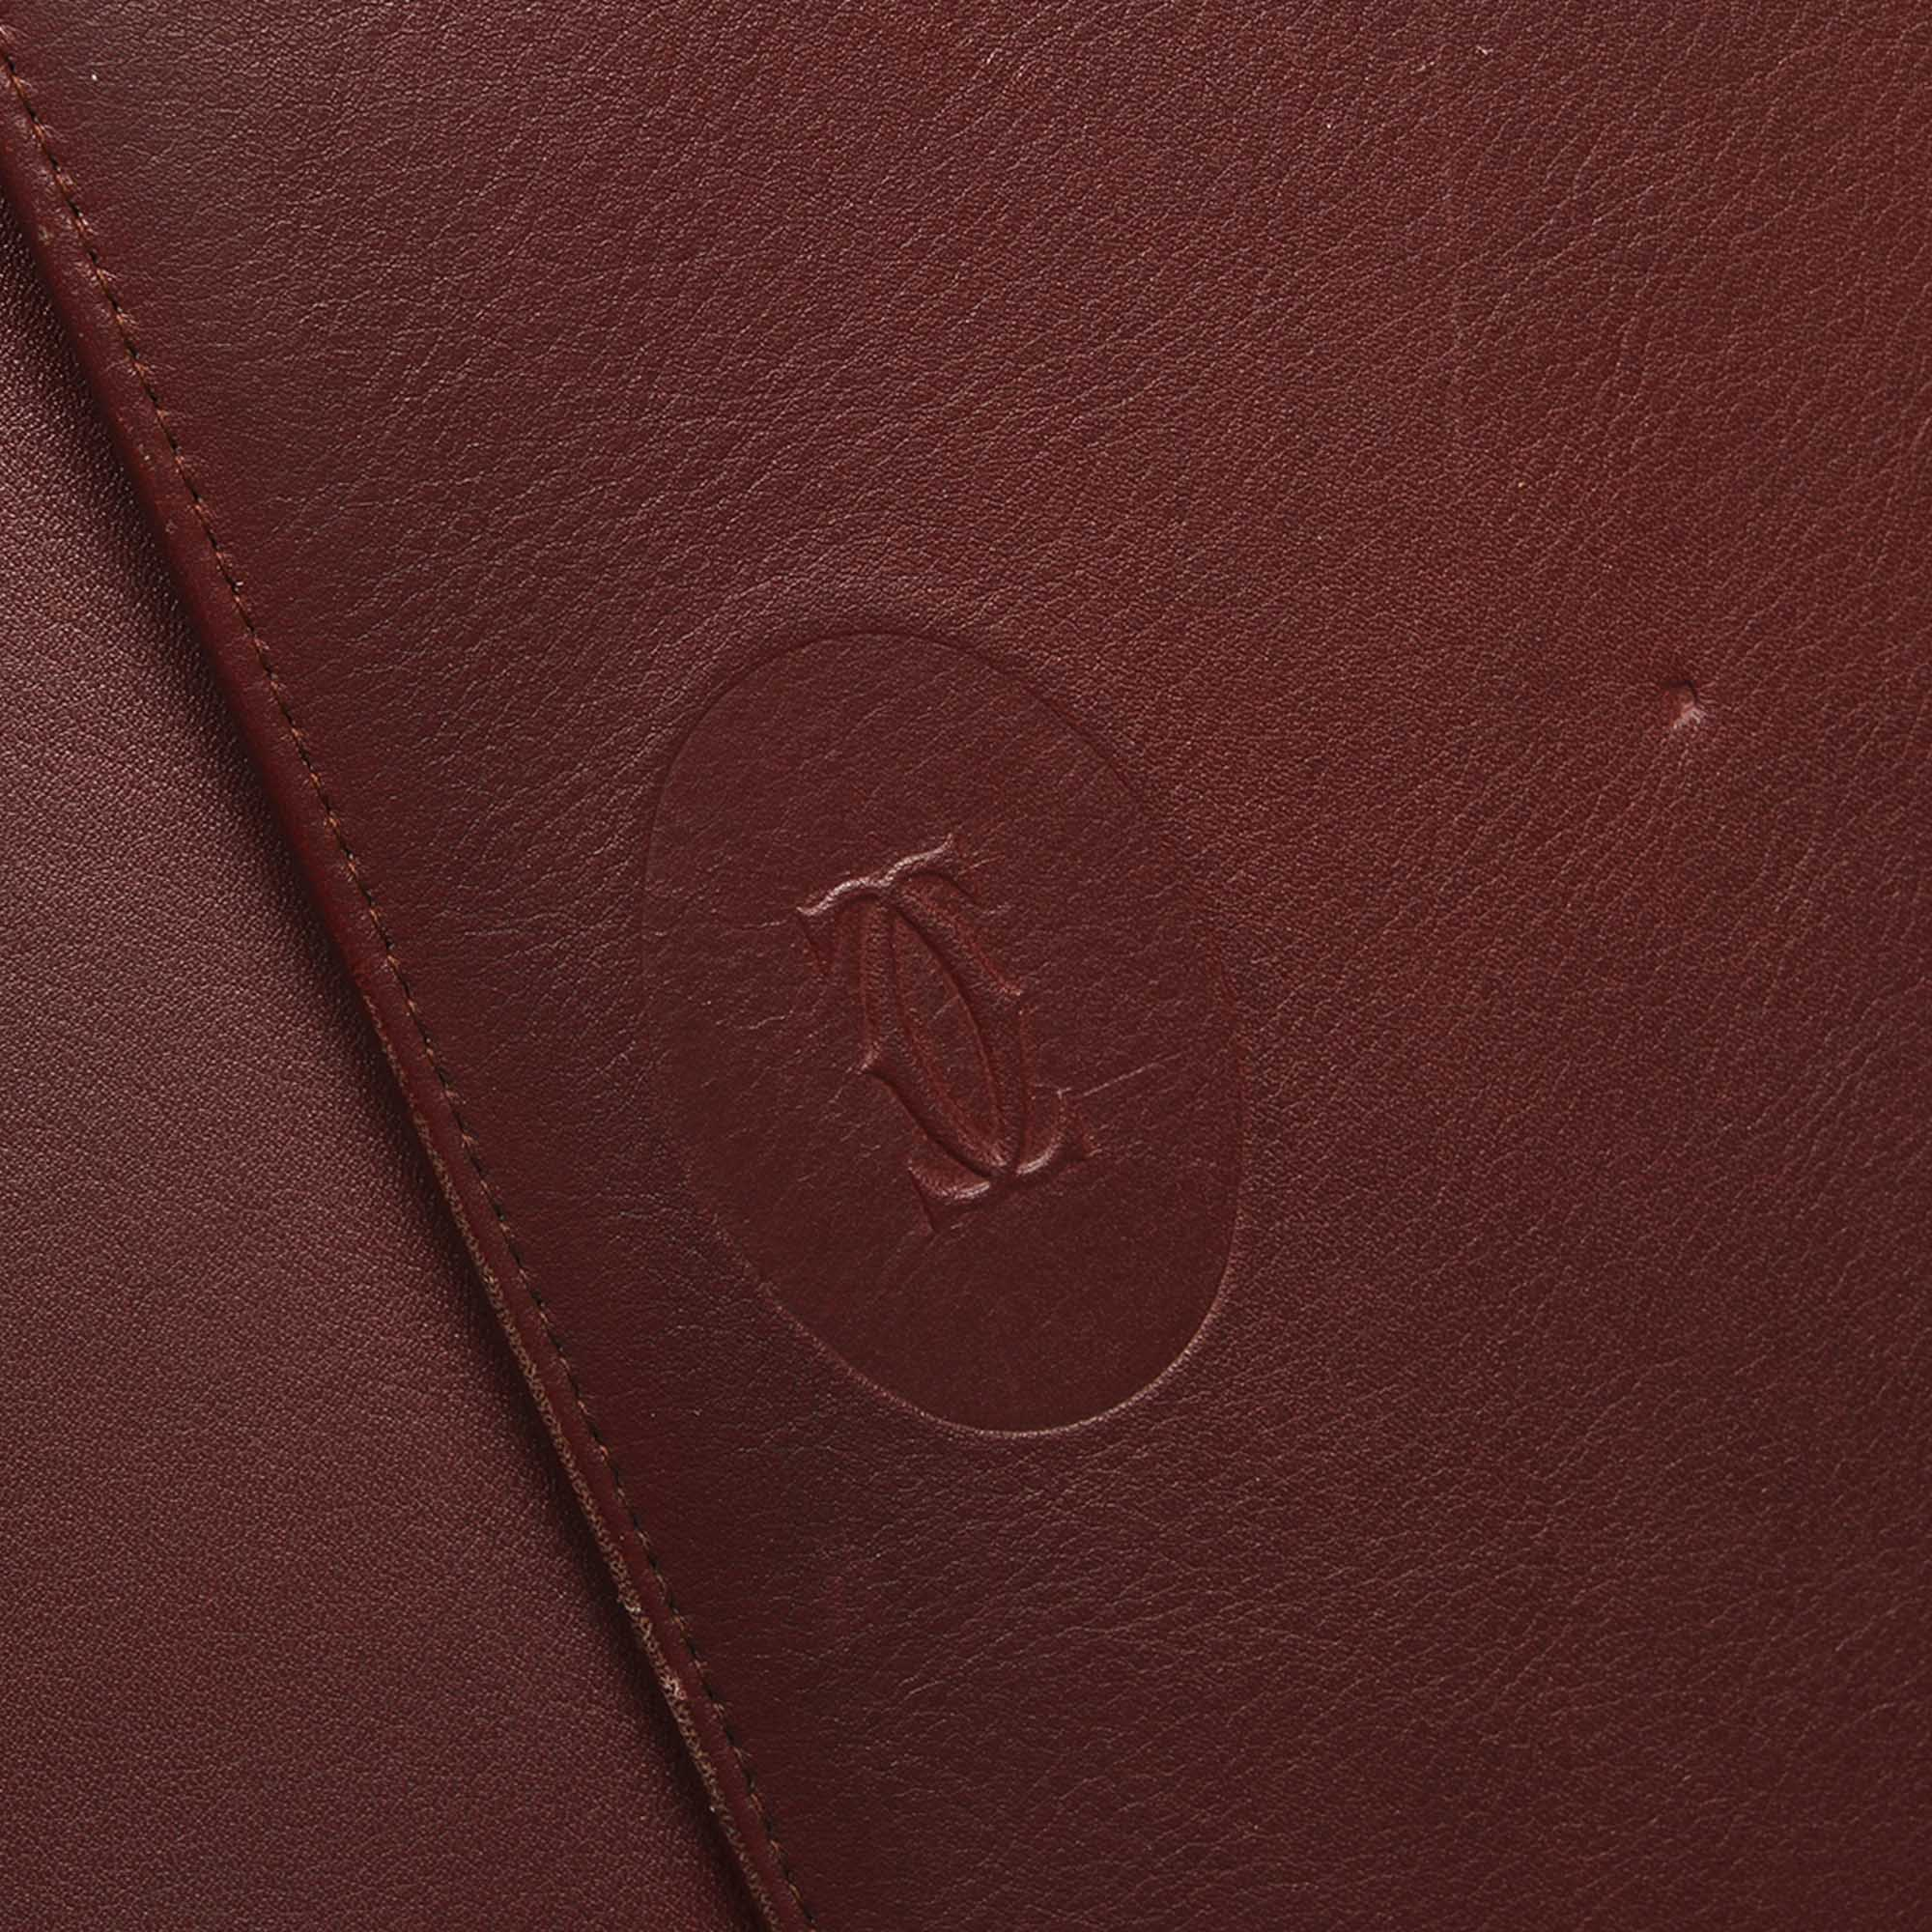 Cartier Red Must De Cartier Leather Clutch Bag